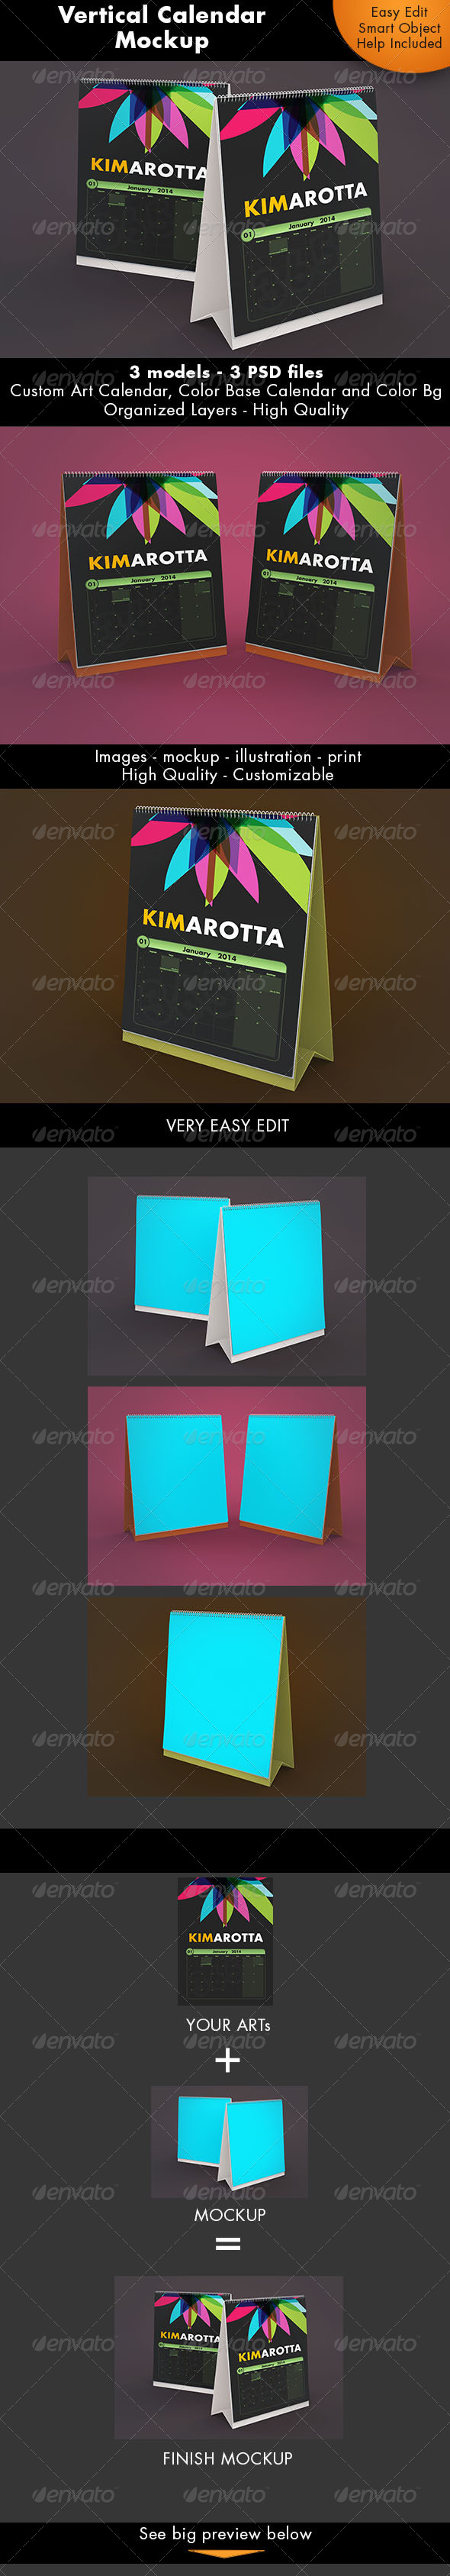 Vertical Calendar Desk Mockup - Miscellaneous Print